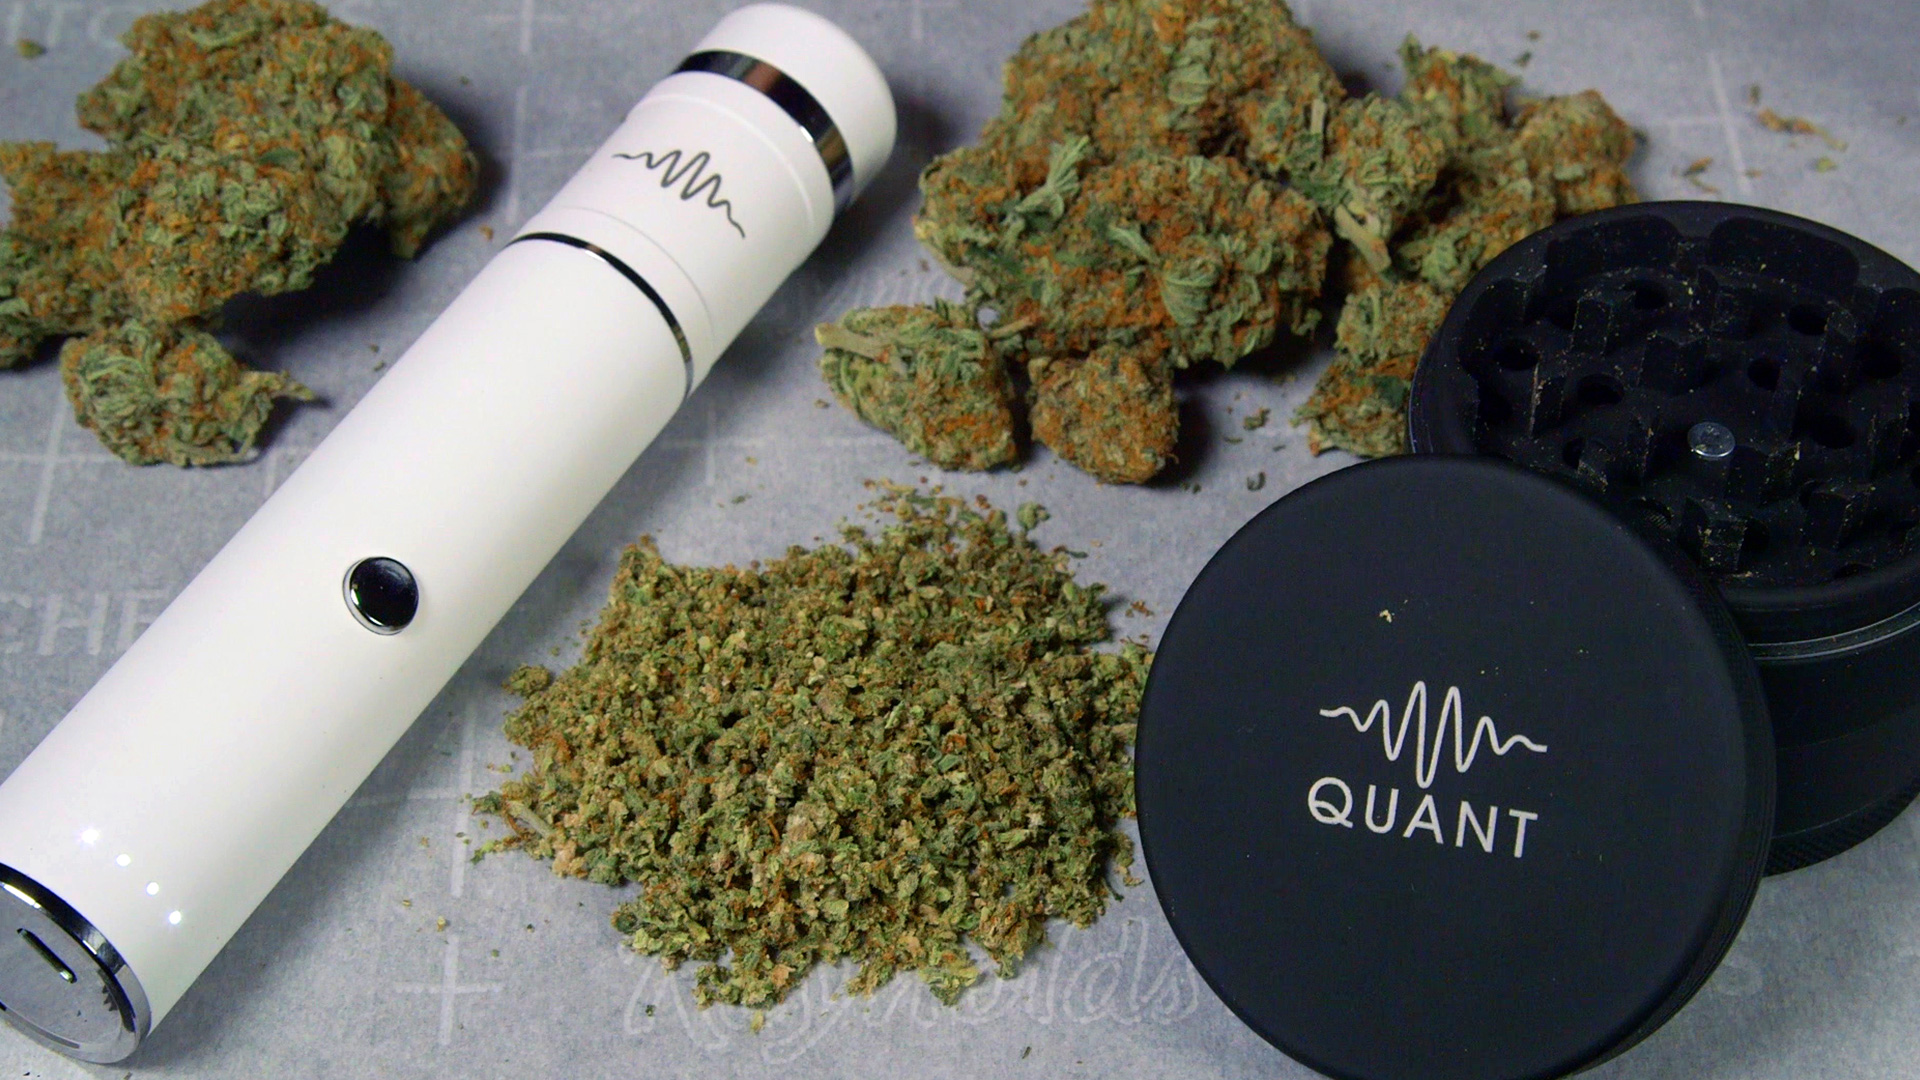 Cannabis Product Reviews